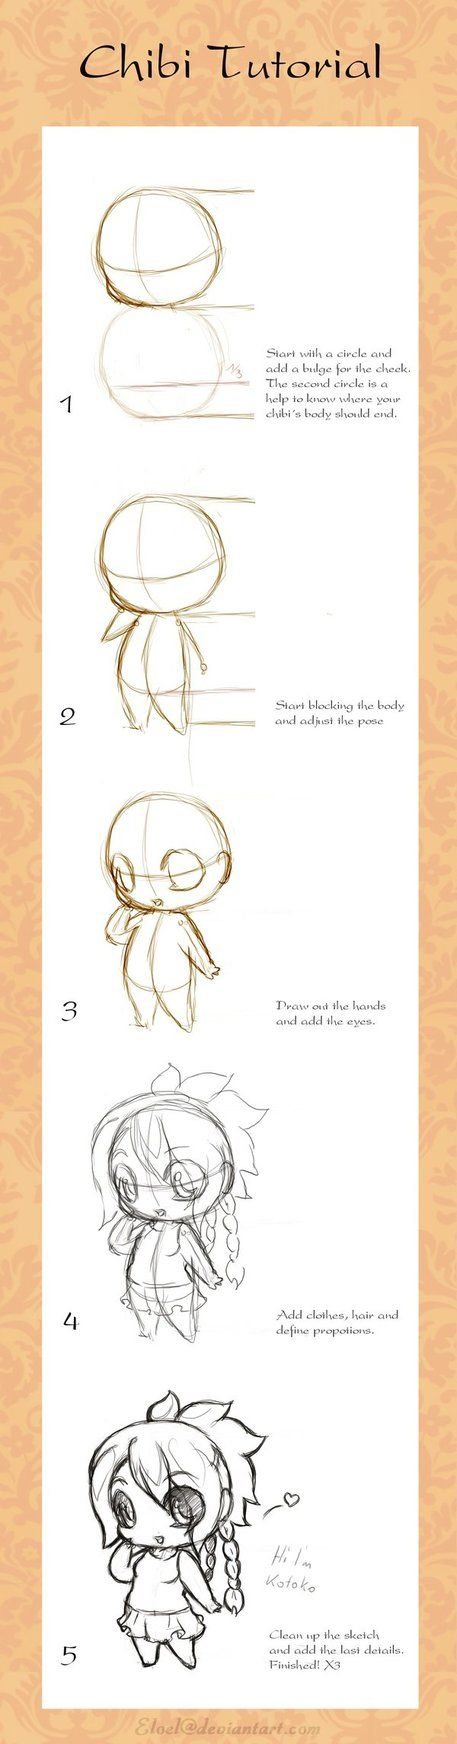 How to draw your own kawaii chibi art. =}